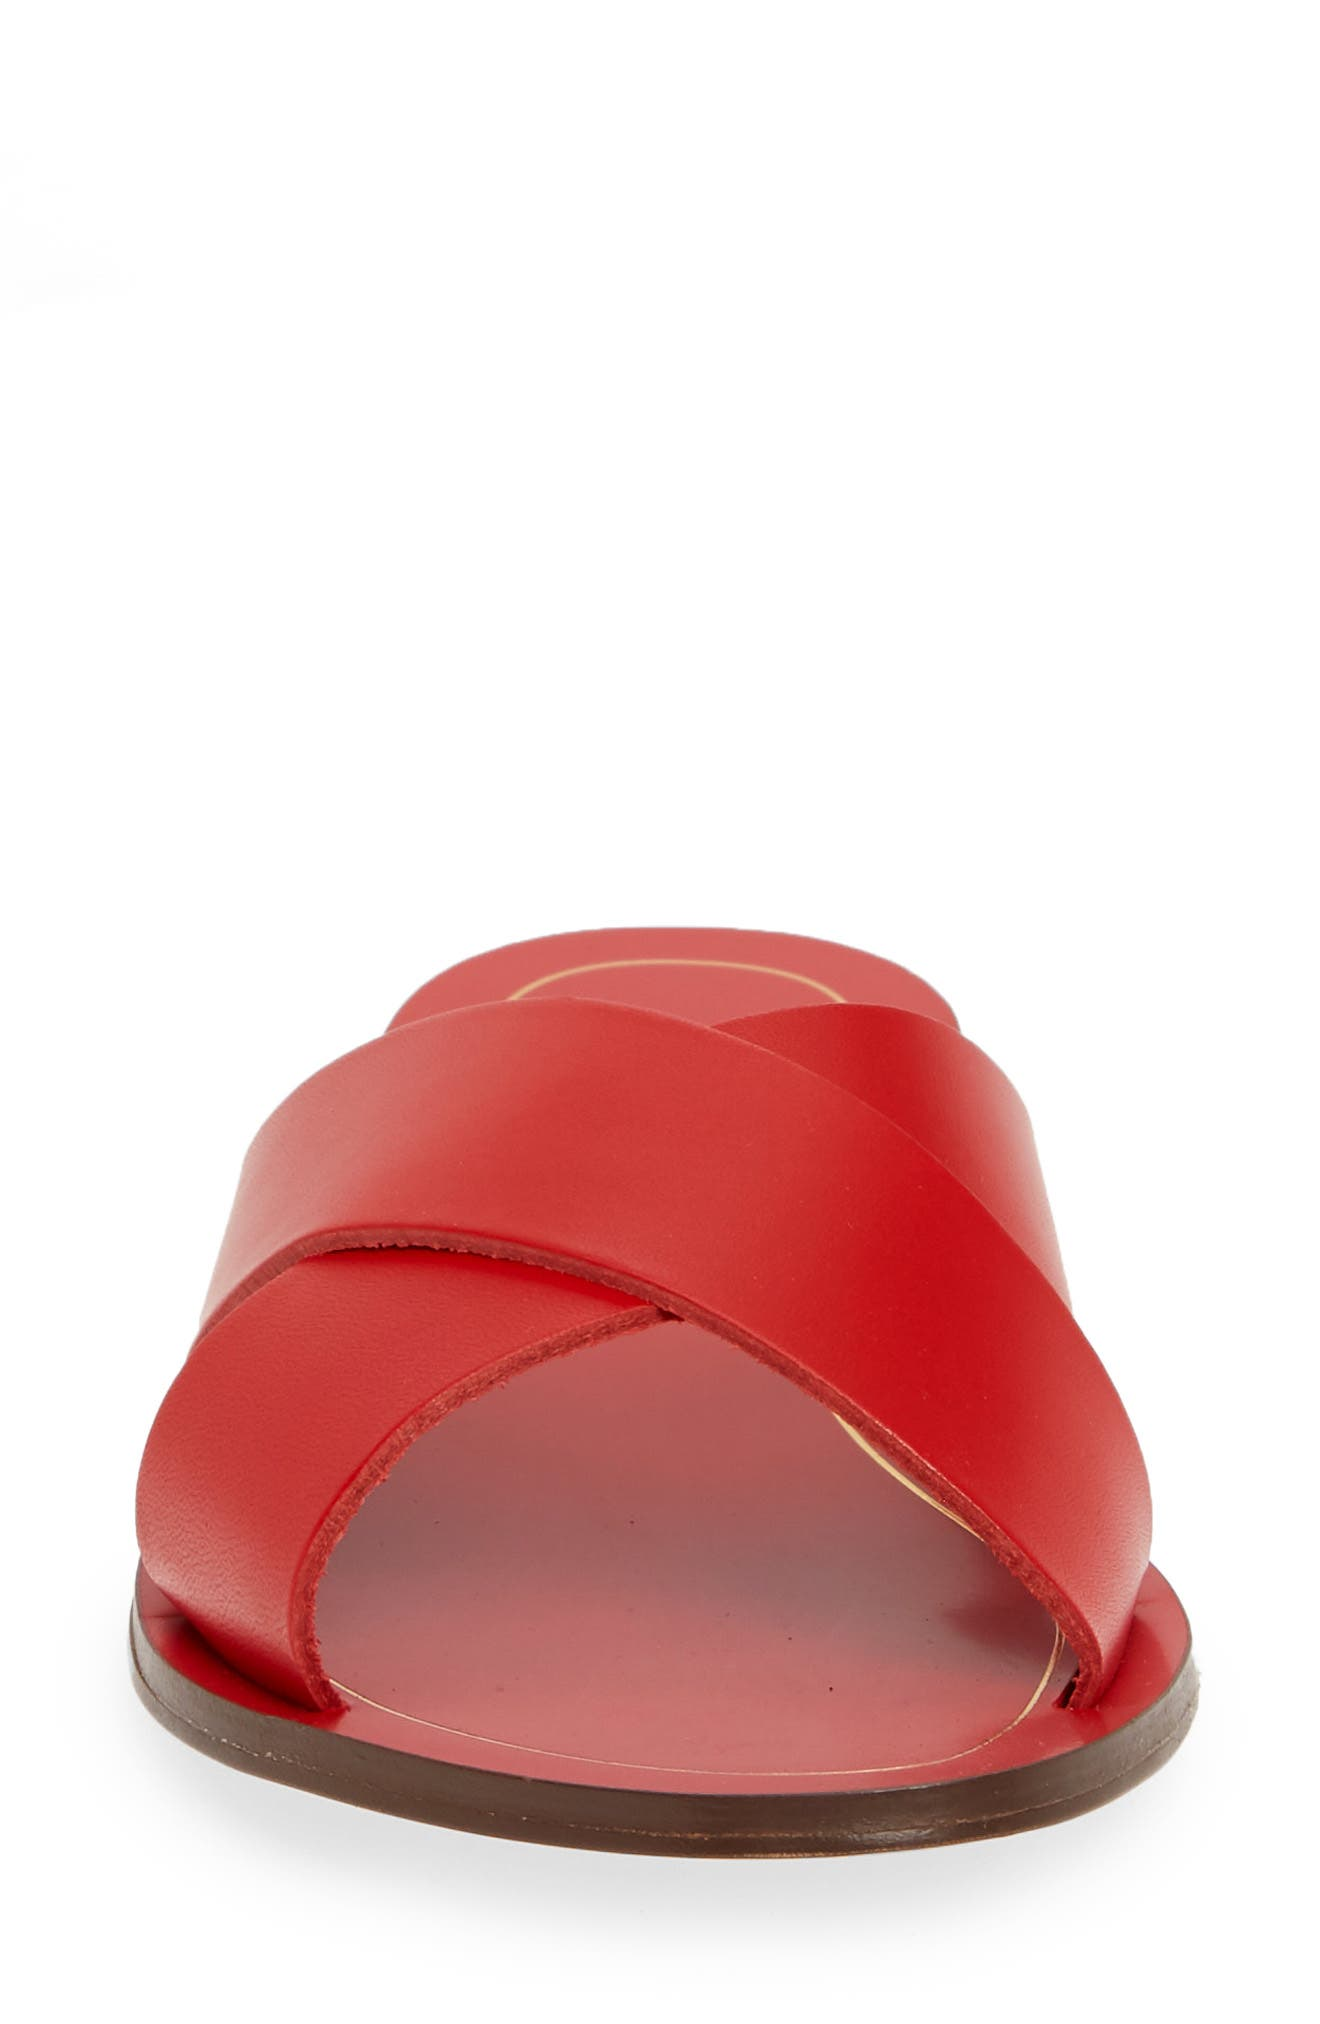 J.CREW, Cyprus Slide Sandal, Alternate thumbnail 4, color, BOLD RED LEATHER